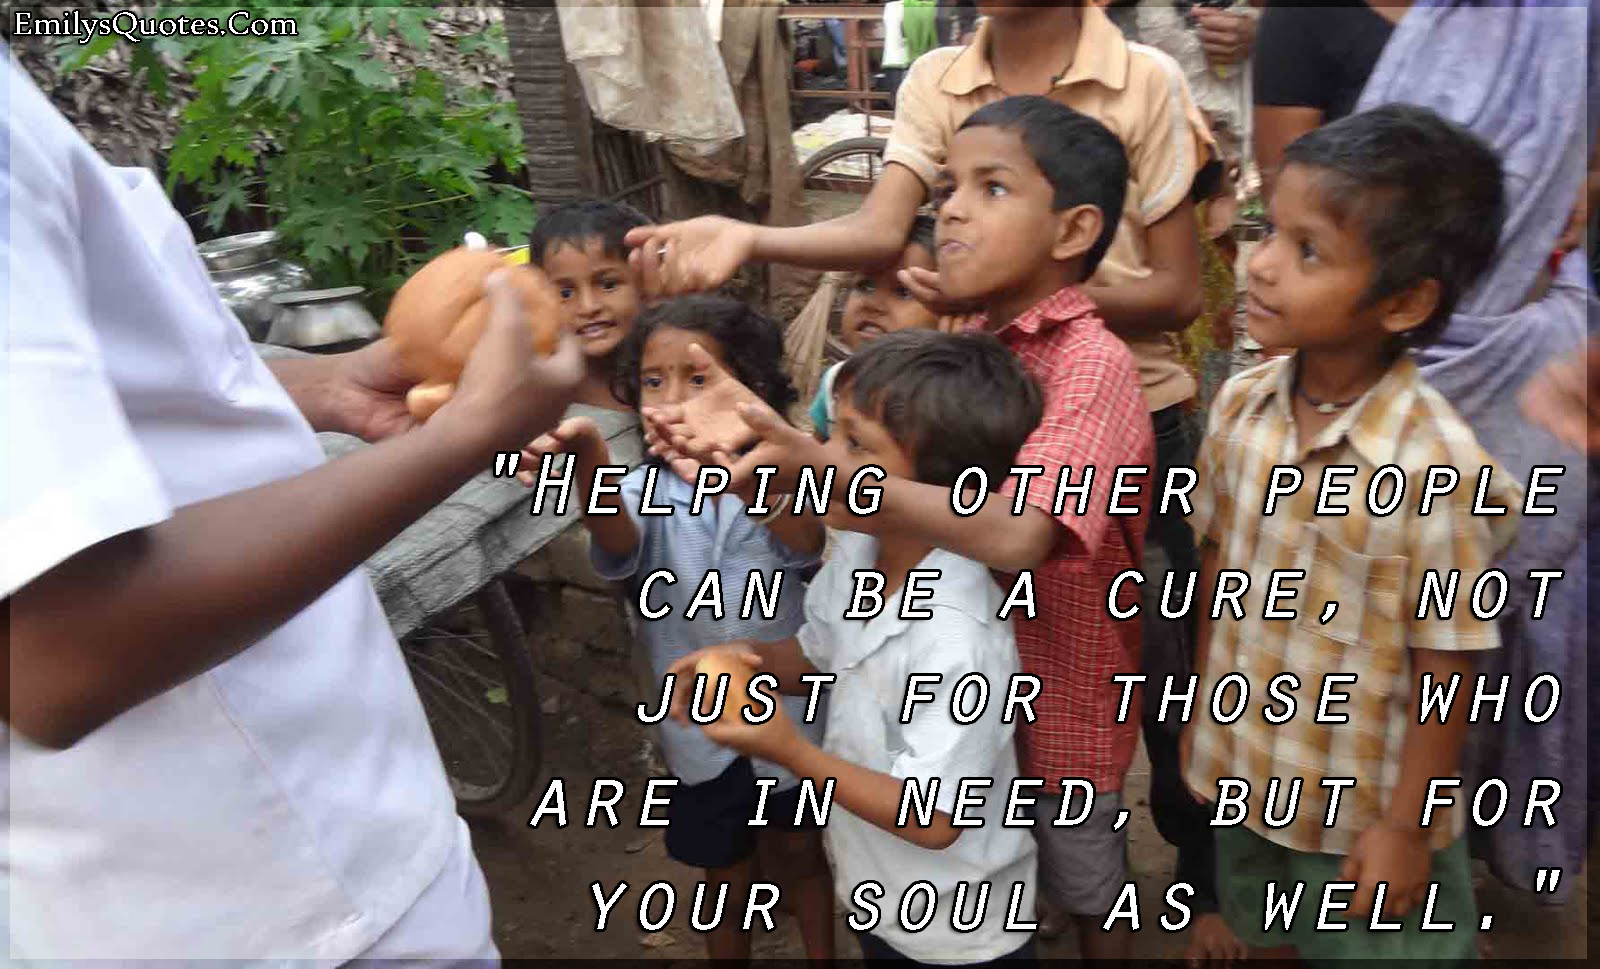 helping-people-cure-need-soul-being-a-good-person-positive